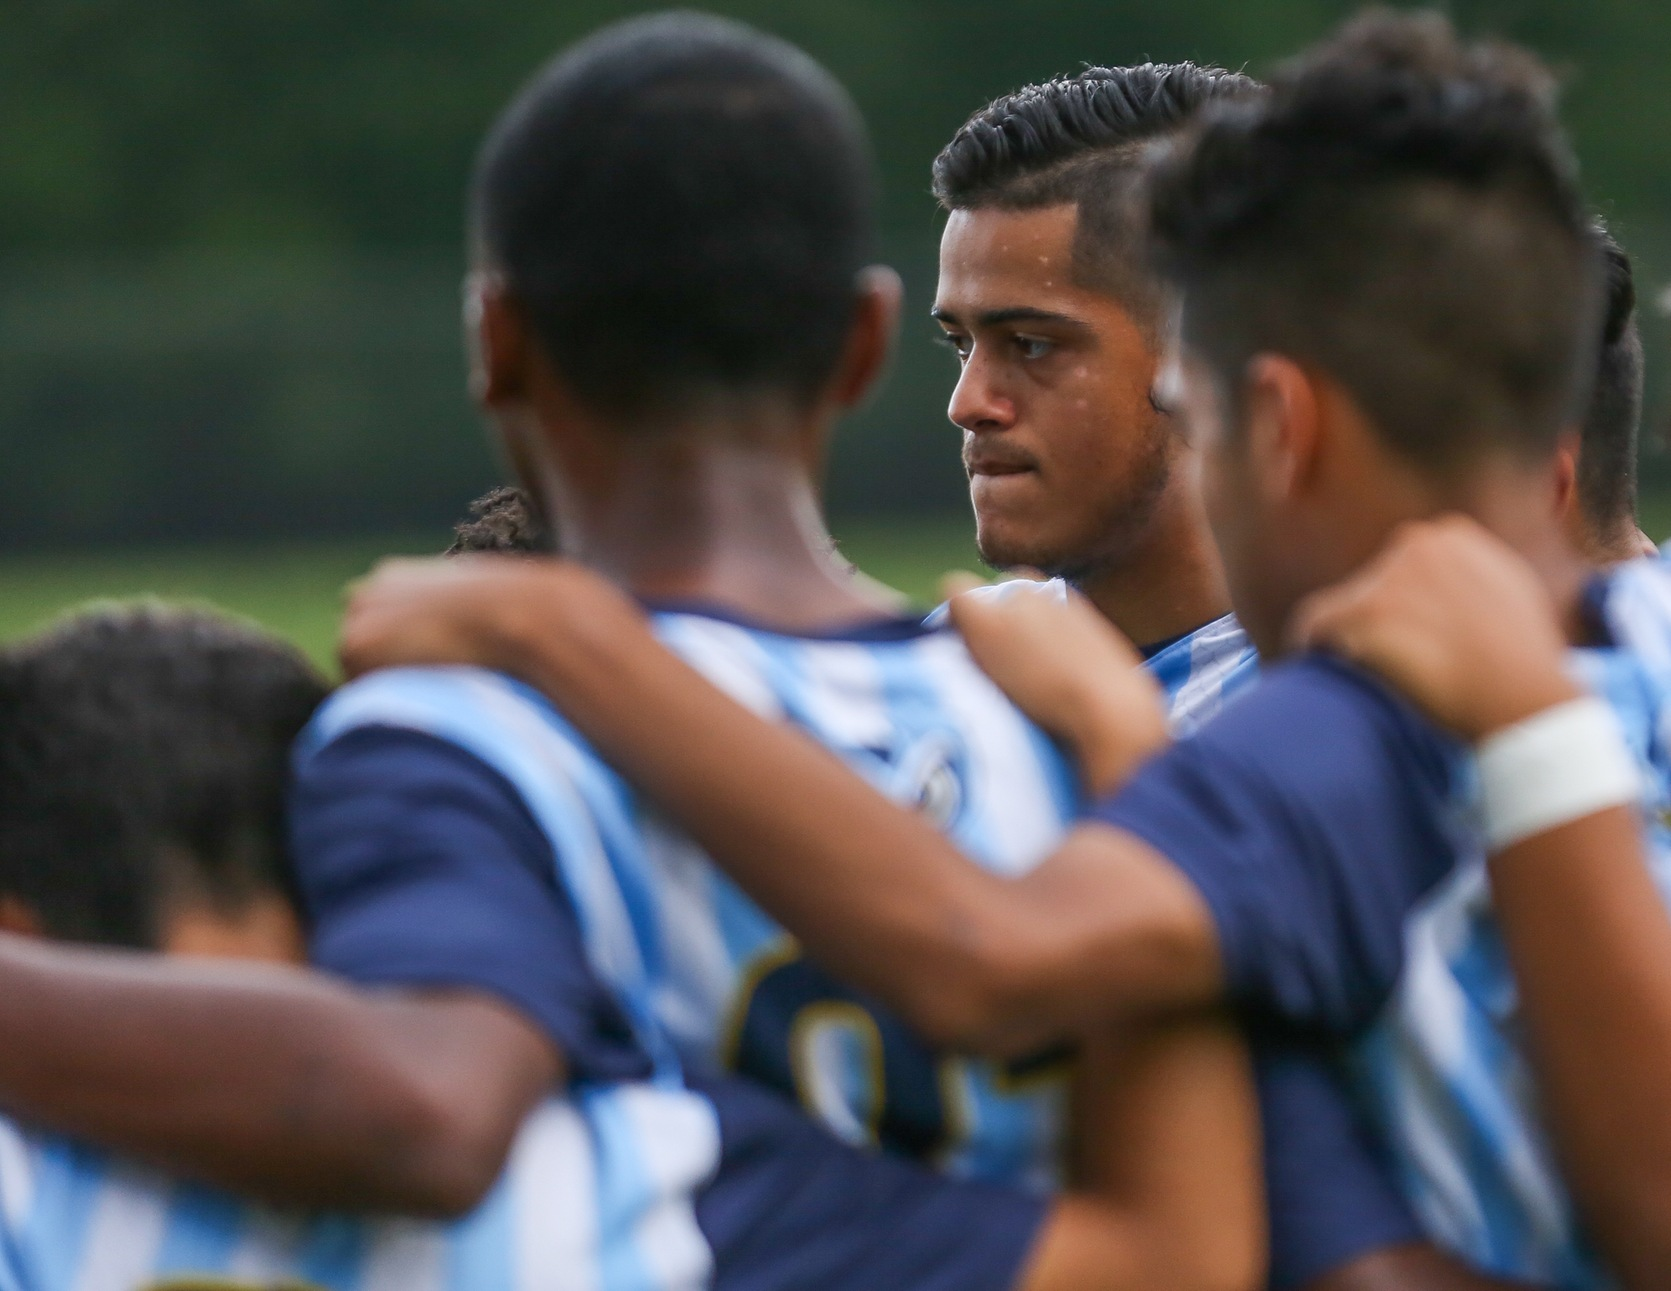 Prince George's Men's Soccer Ranks Eighth In Latest NJCAA Division III Men's Soccer Rankings